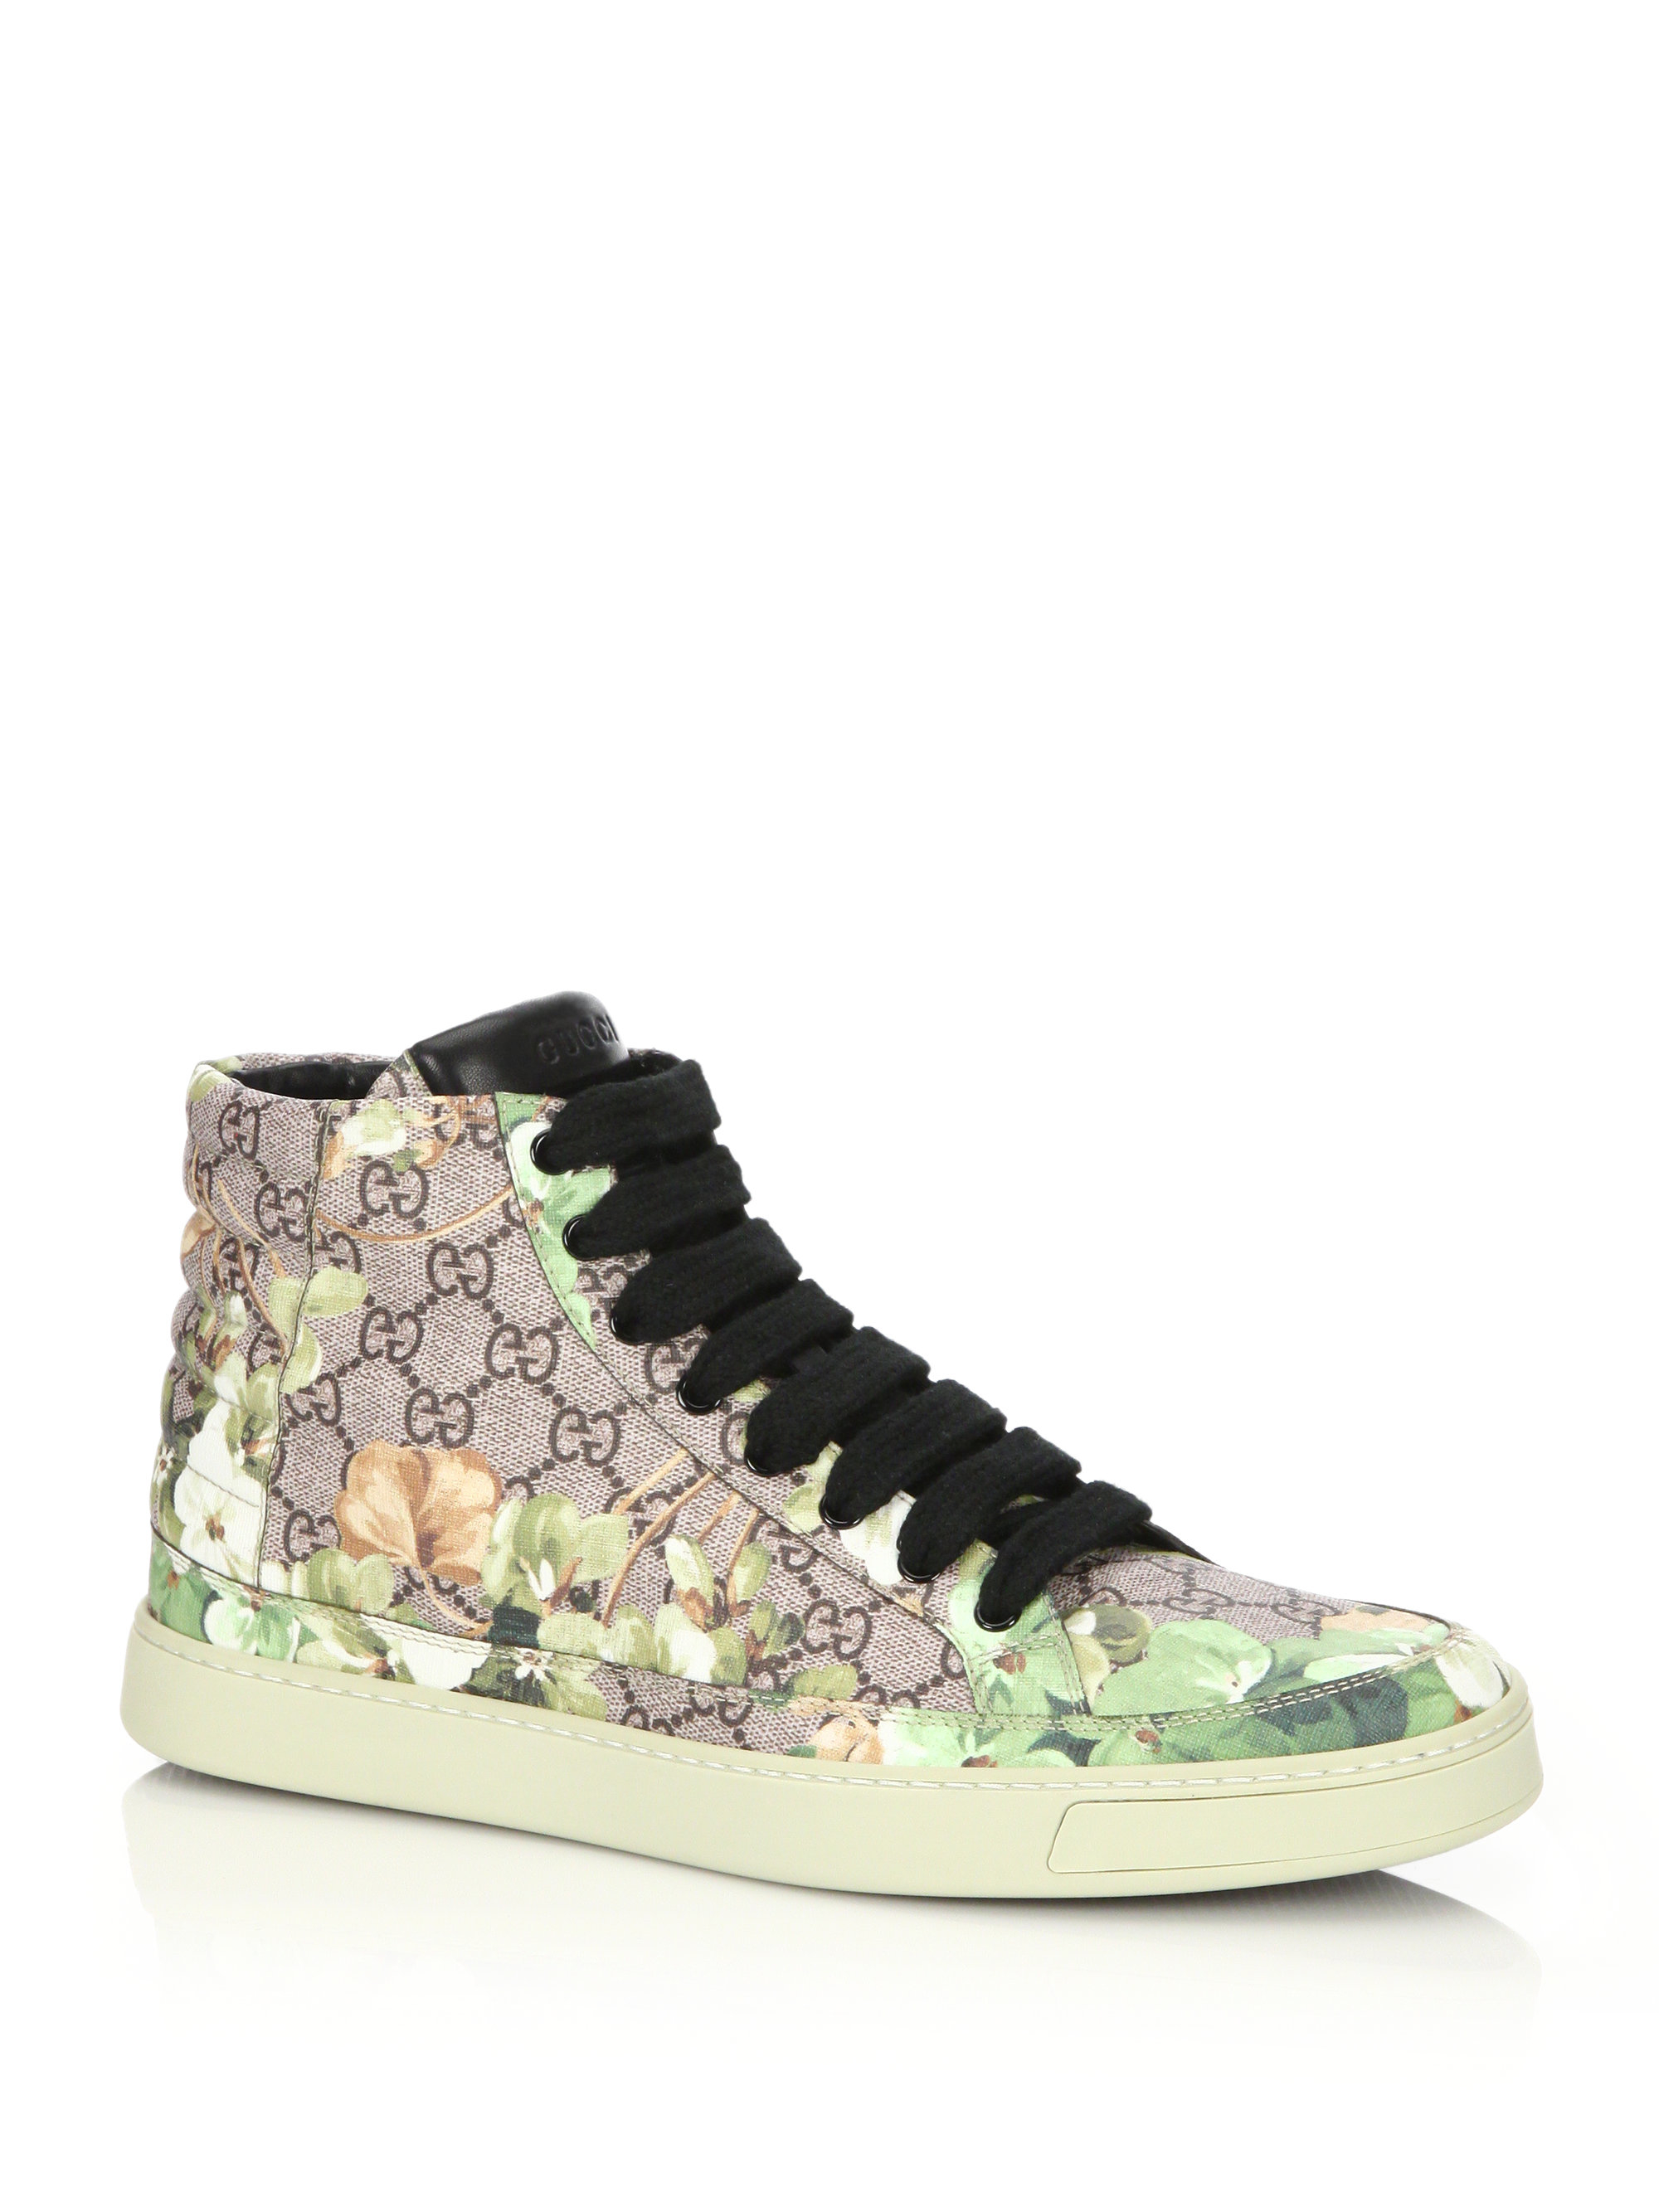 c6ebbde379d Lyst - Gucci Blooms Print High-top Sneakers for Men